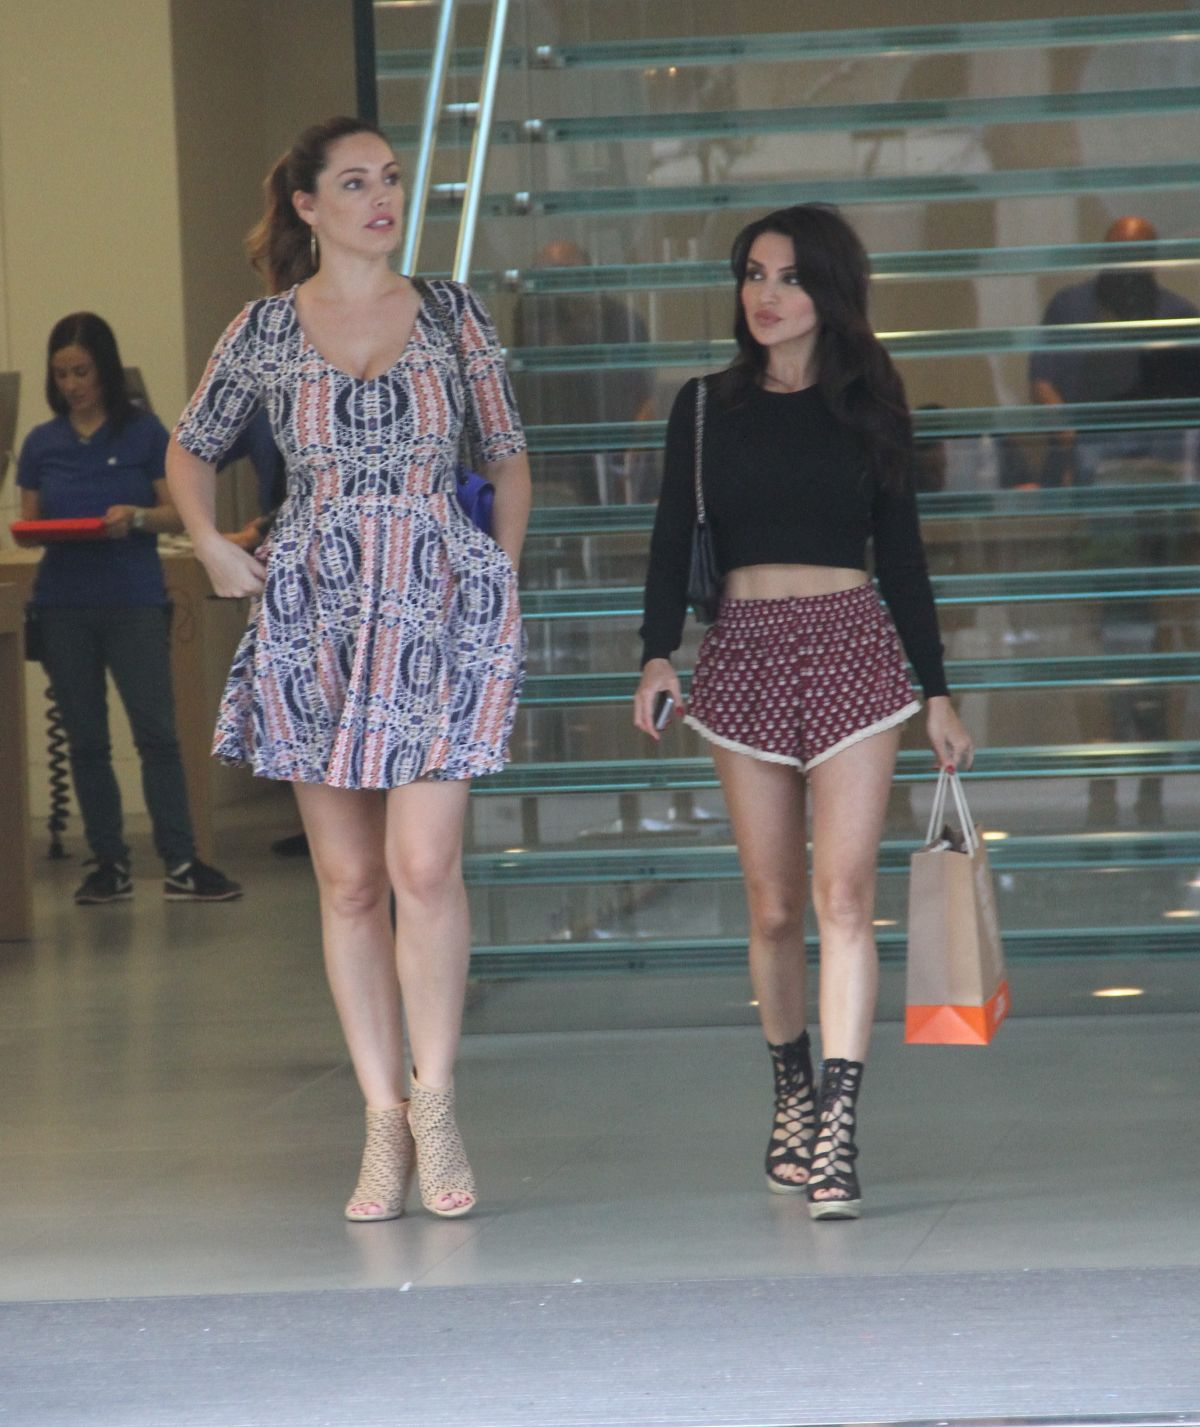 KELLY BROOK and NATALIE LOREN Shopping at Nike Town